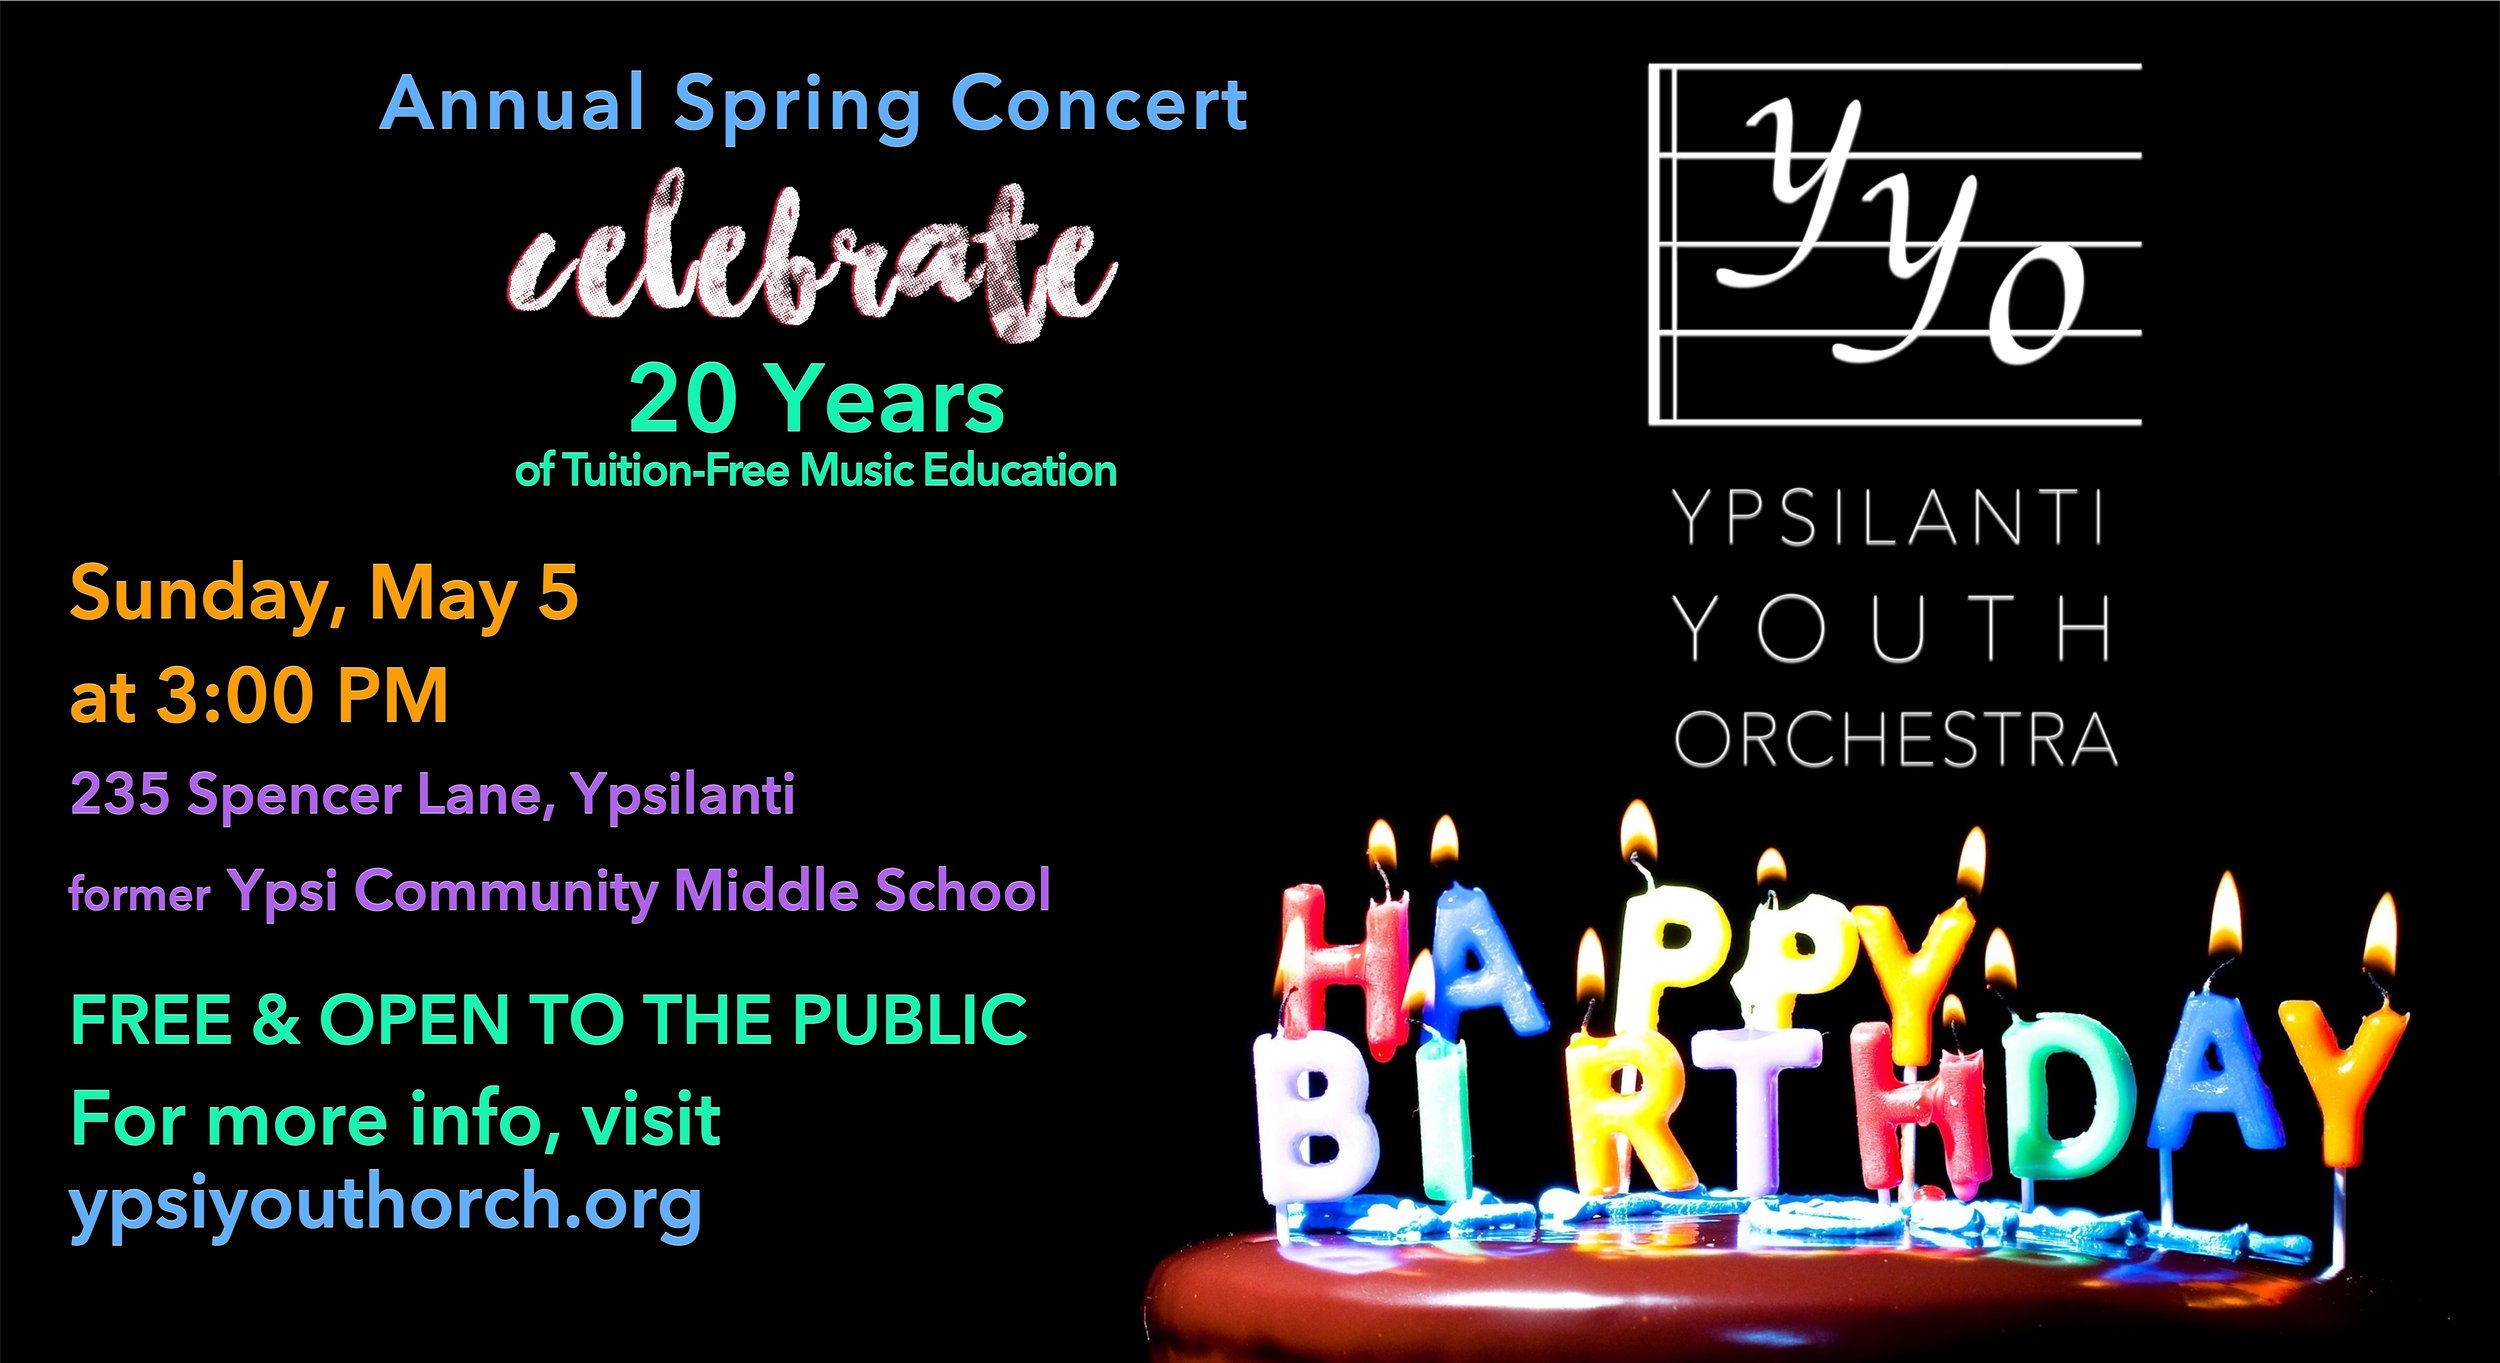 Our Next Concert! - Celebrate 20 years of the Ypsilanti Youth Orchestra with musical classics from our past! The orchestra and our pre-orchestra classes will play favorites, and a reception will follow for friends and families of the YYO. Be sure to support our children today!